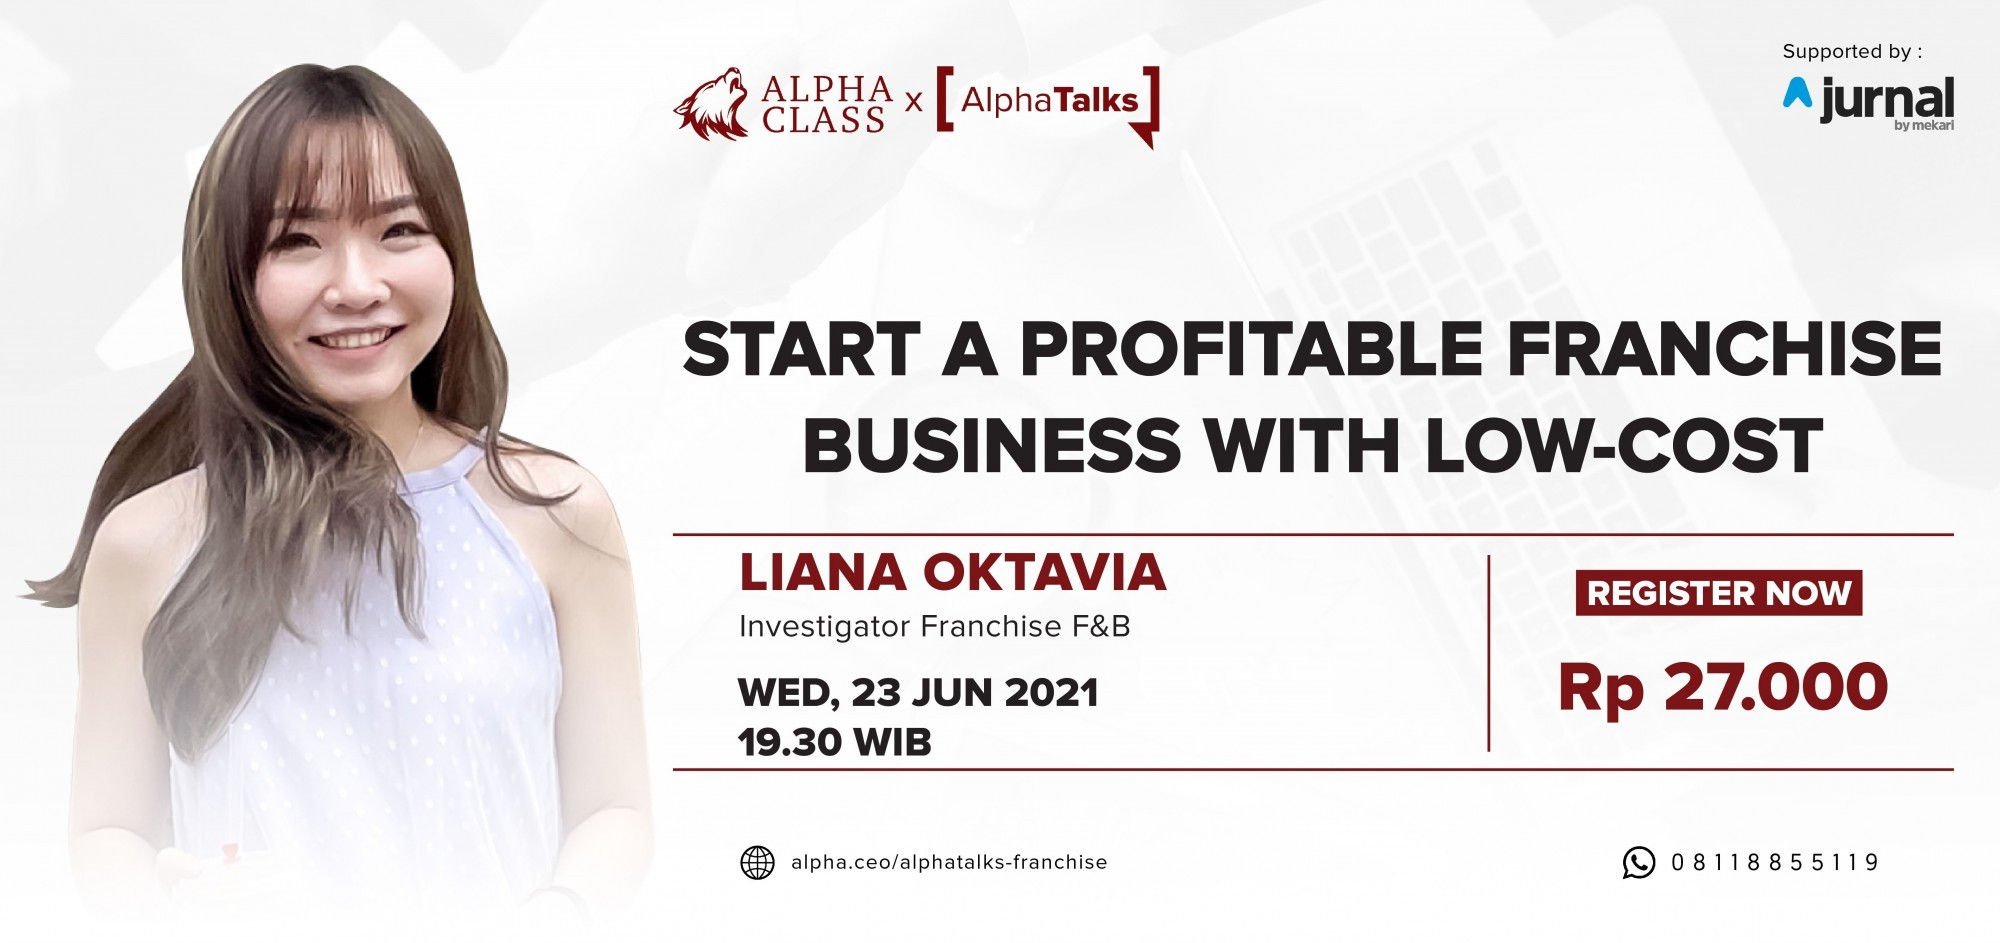 ALPHA TALKS: Start A Profitabable Franchise Business With Low-Cost